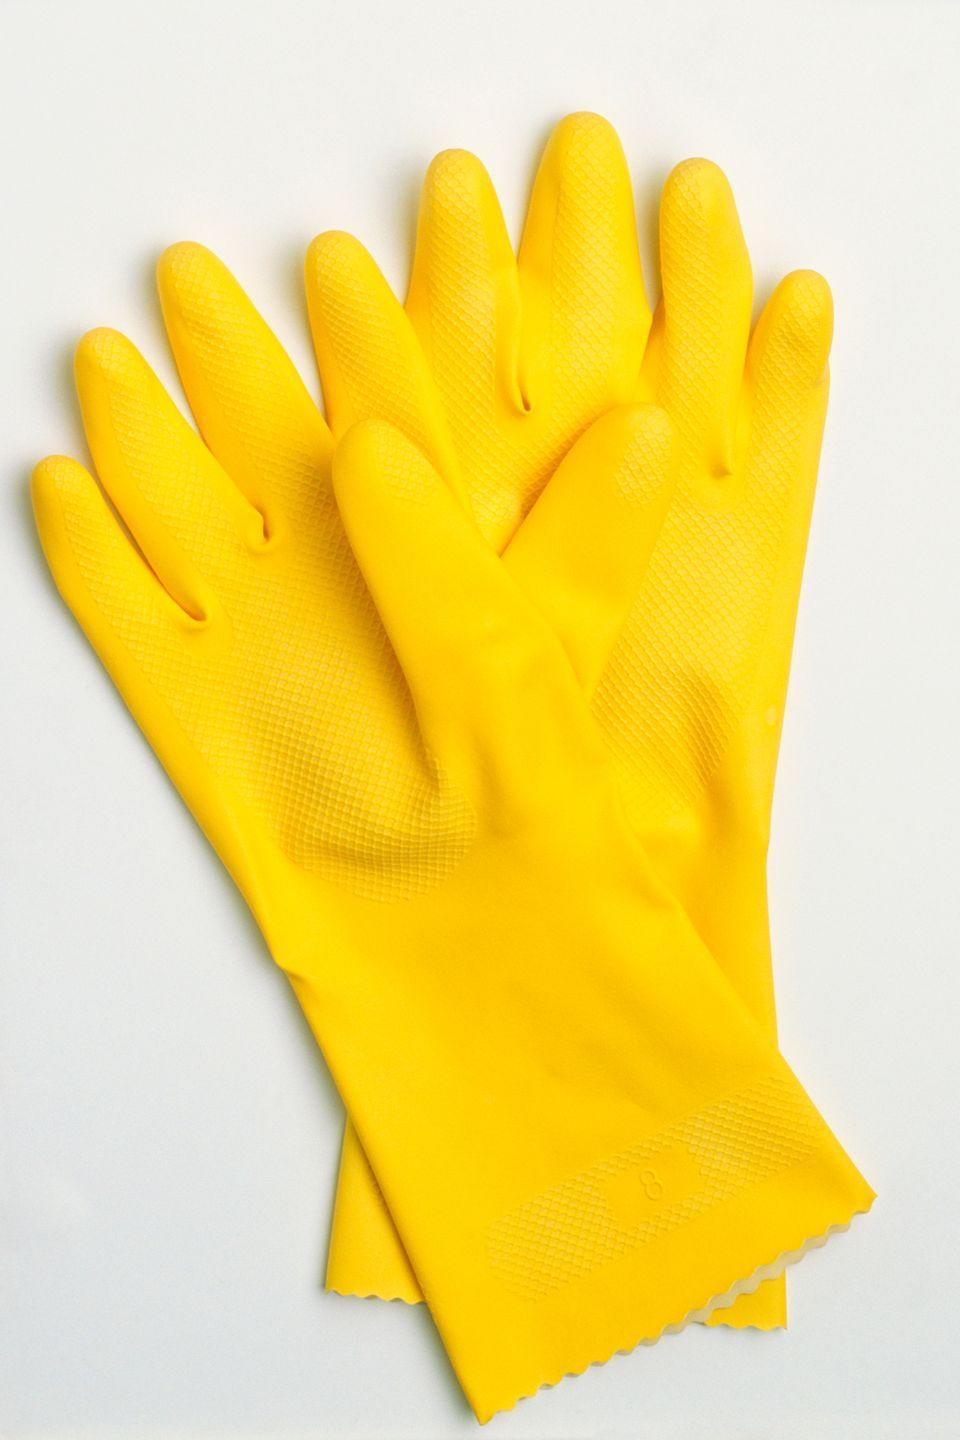 """<p>Protecting your hands from harsh <a href=""""https://www.goodhousekeeping.com/home/cleaning/g4727/amazon-cleaning-products-under-15-dollars/"""" rel=""""nofollow noopener"""" target=""""_blank"""" data-ylk=""""slk:cleaning chemicals"""" class=""""link rapid-noclick-resp"""">cleaning chemicals</a> can cost up to 15 times more at popular retailers. Opt for the cheaper version, available at dollar stores across the country, instead. </p>"""